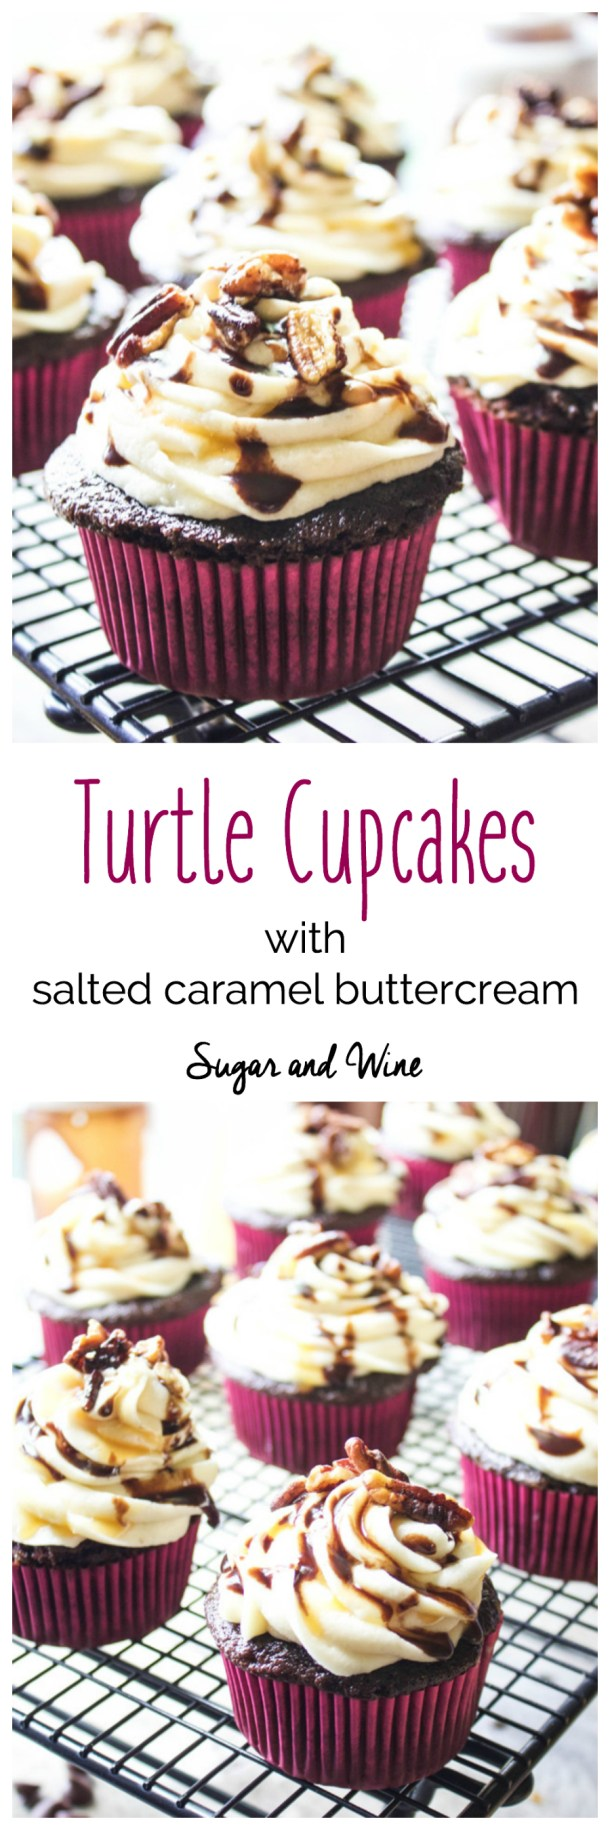 Turtle Cupcakes with Salted Caramel Buttercream | Sugar and Wine